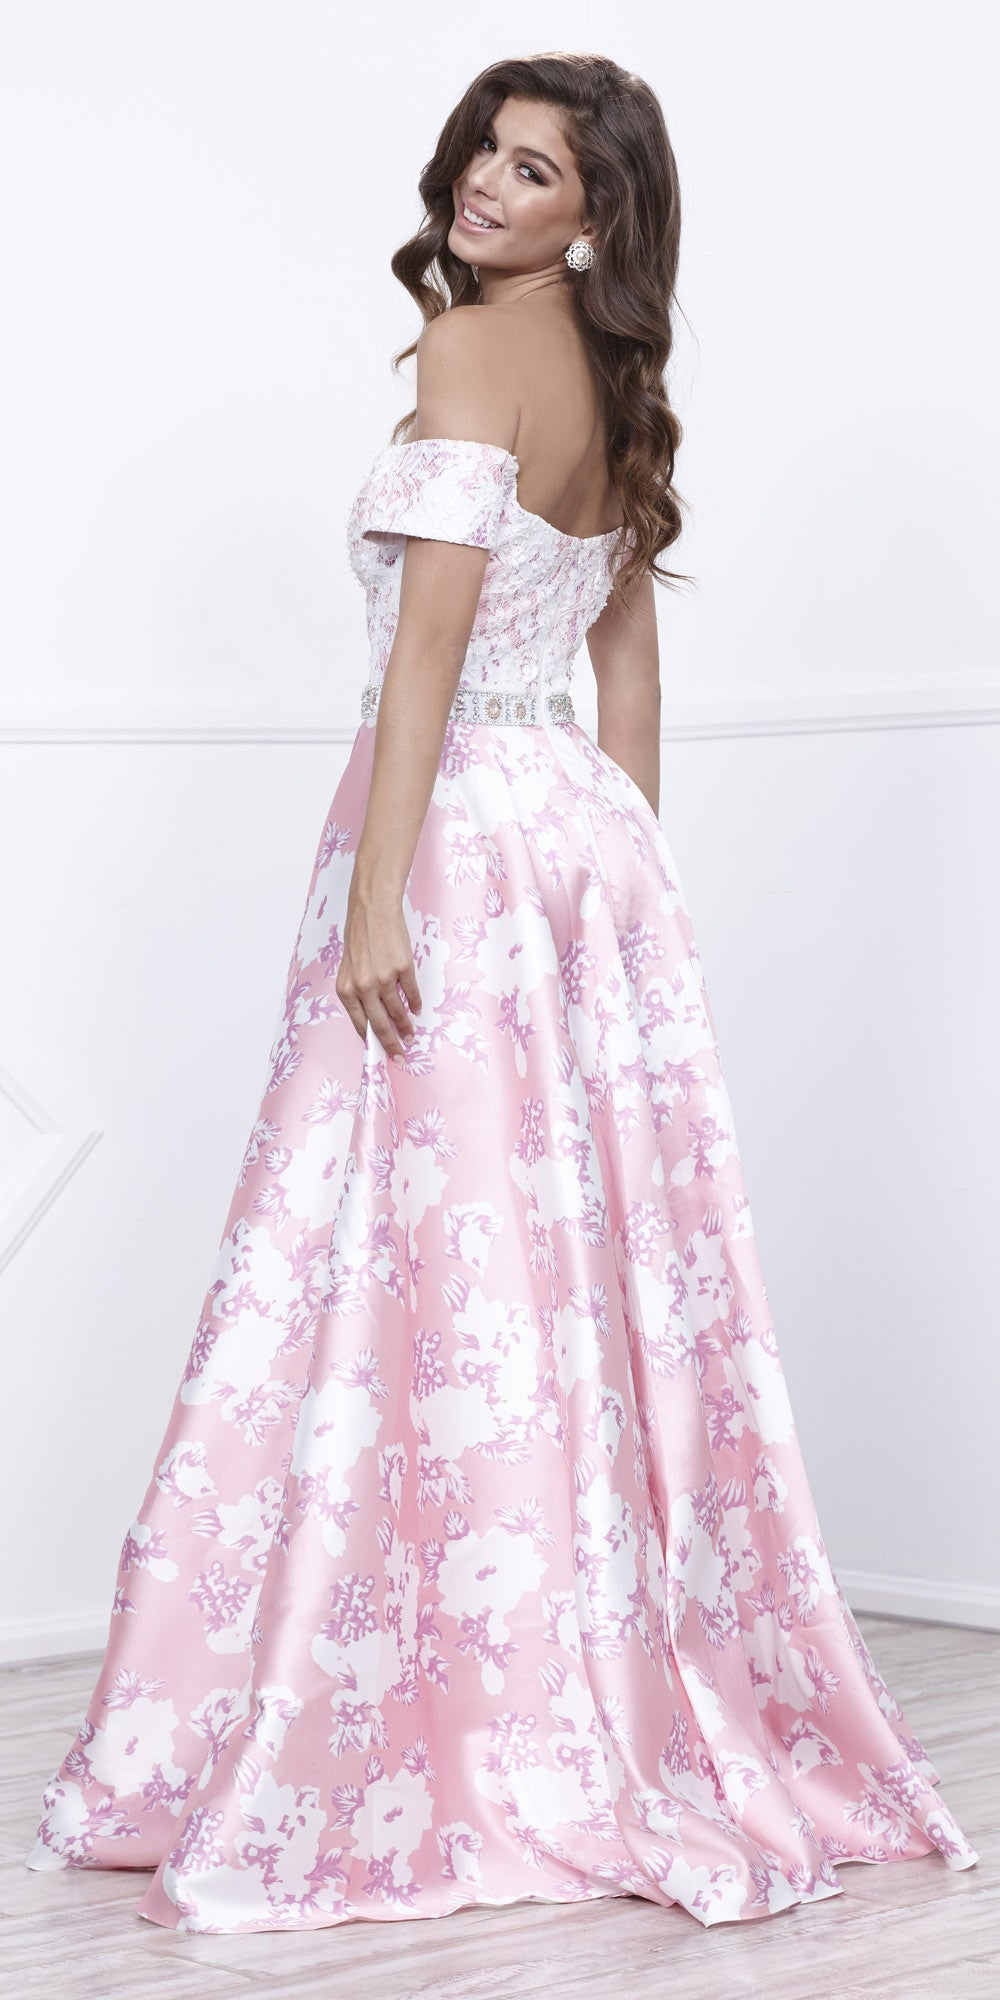 Lace Off-Shoulder Satin Print Skirt with Beaded Belt Prom Gown Pink